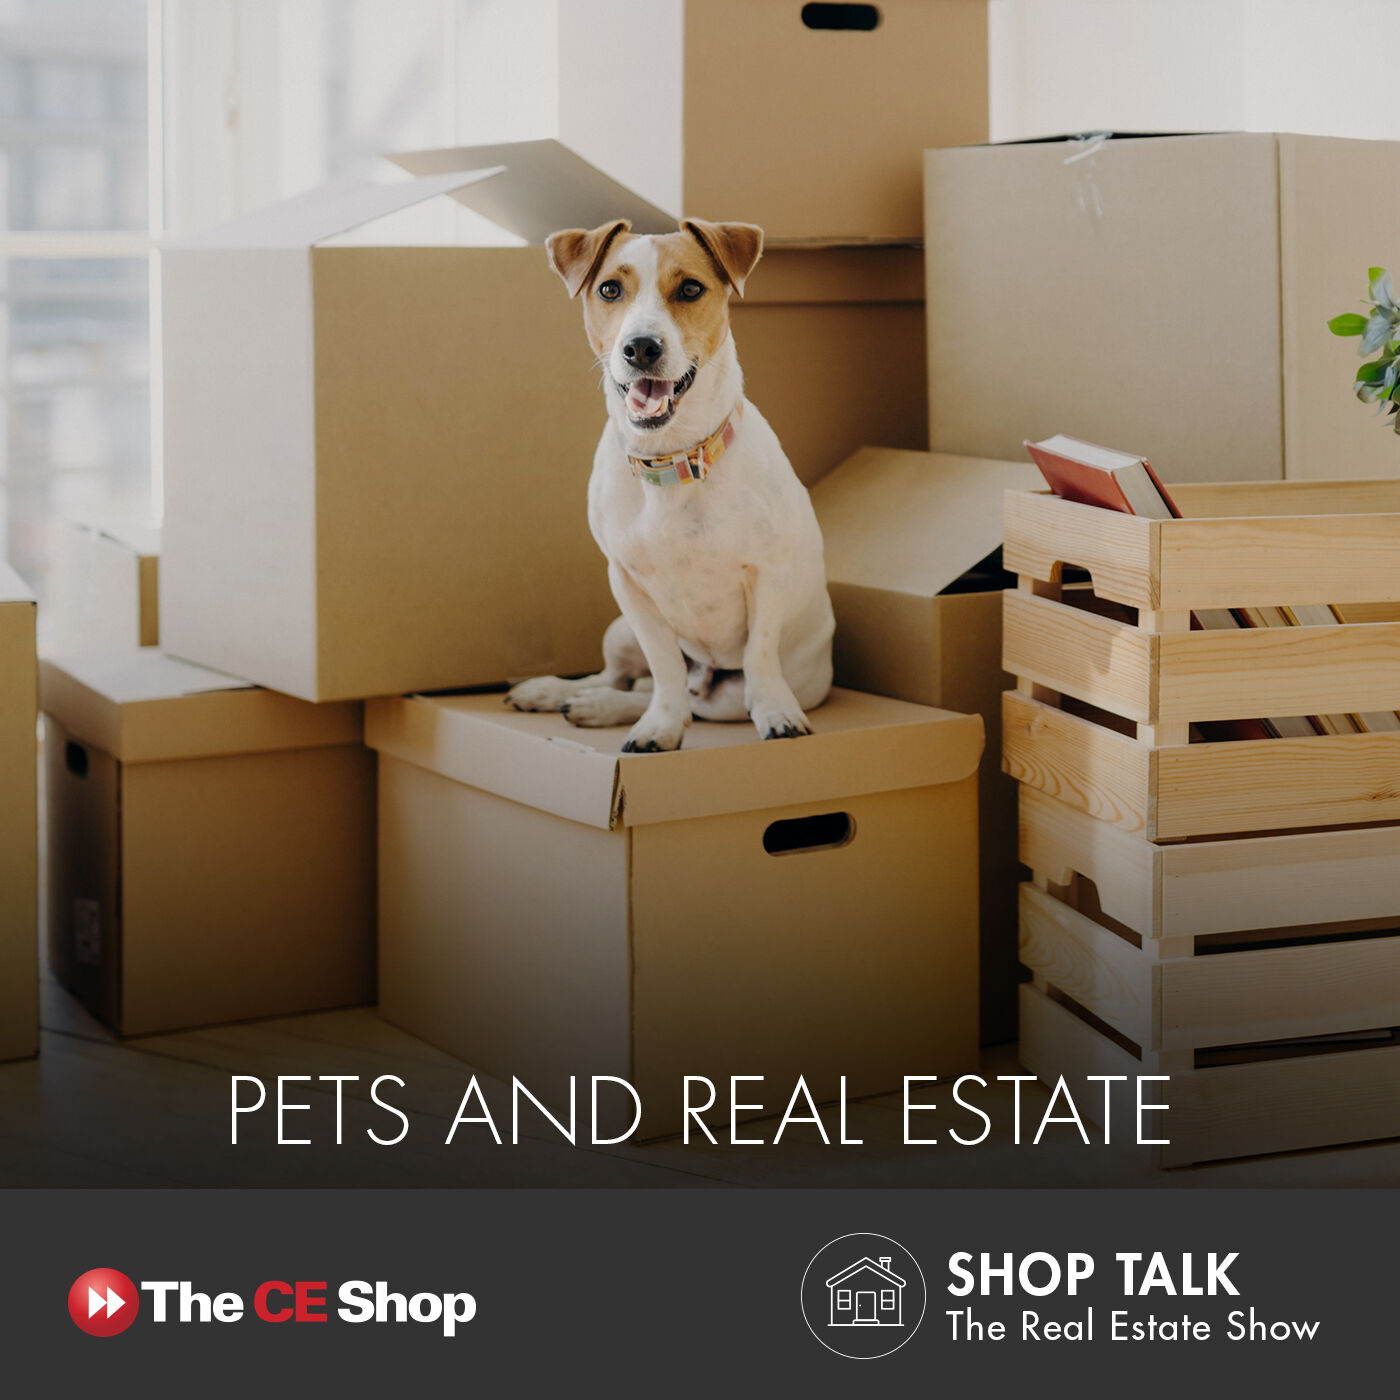 67: Pets and Real Estate